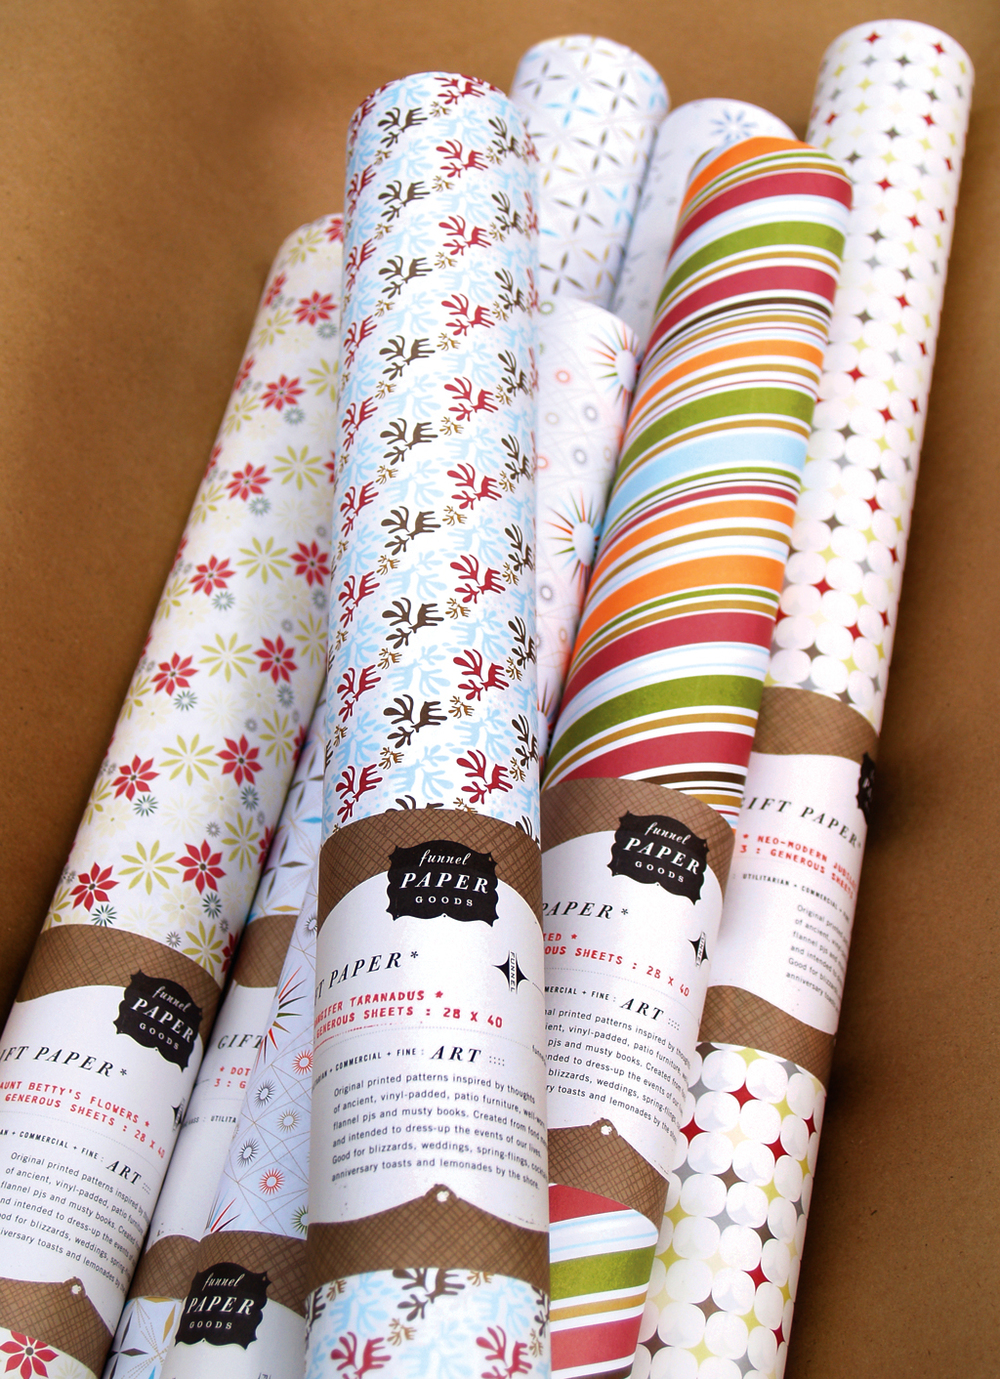 Funnel Paper Goods